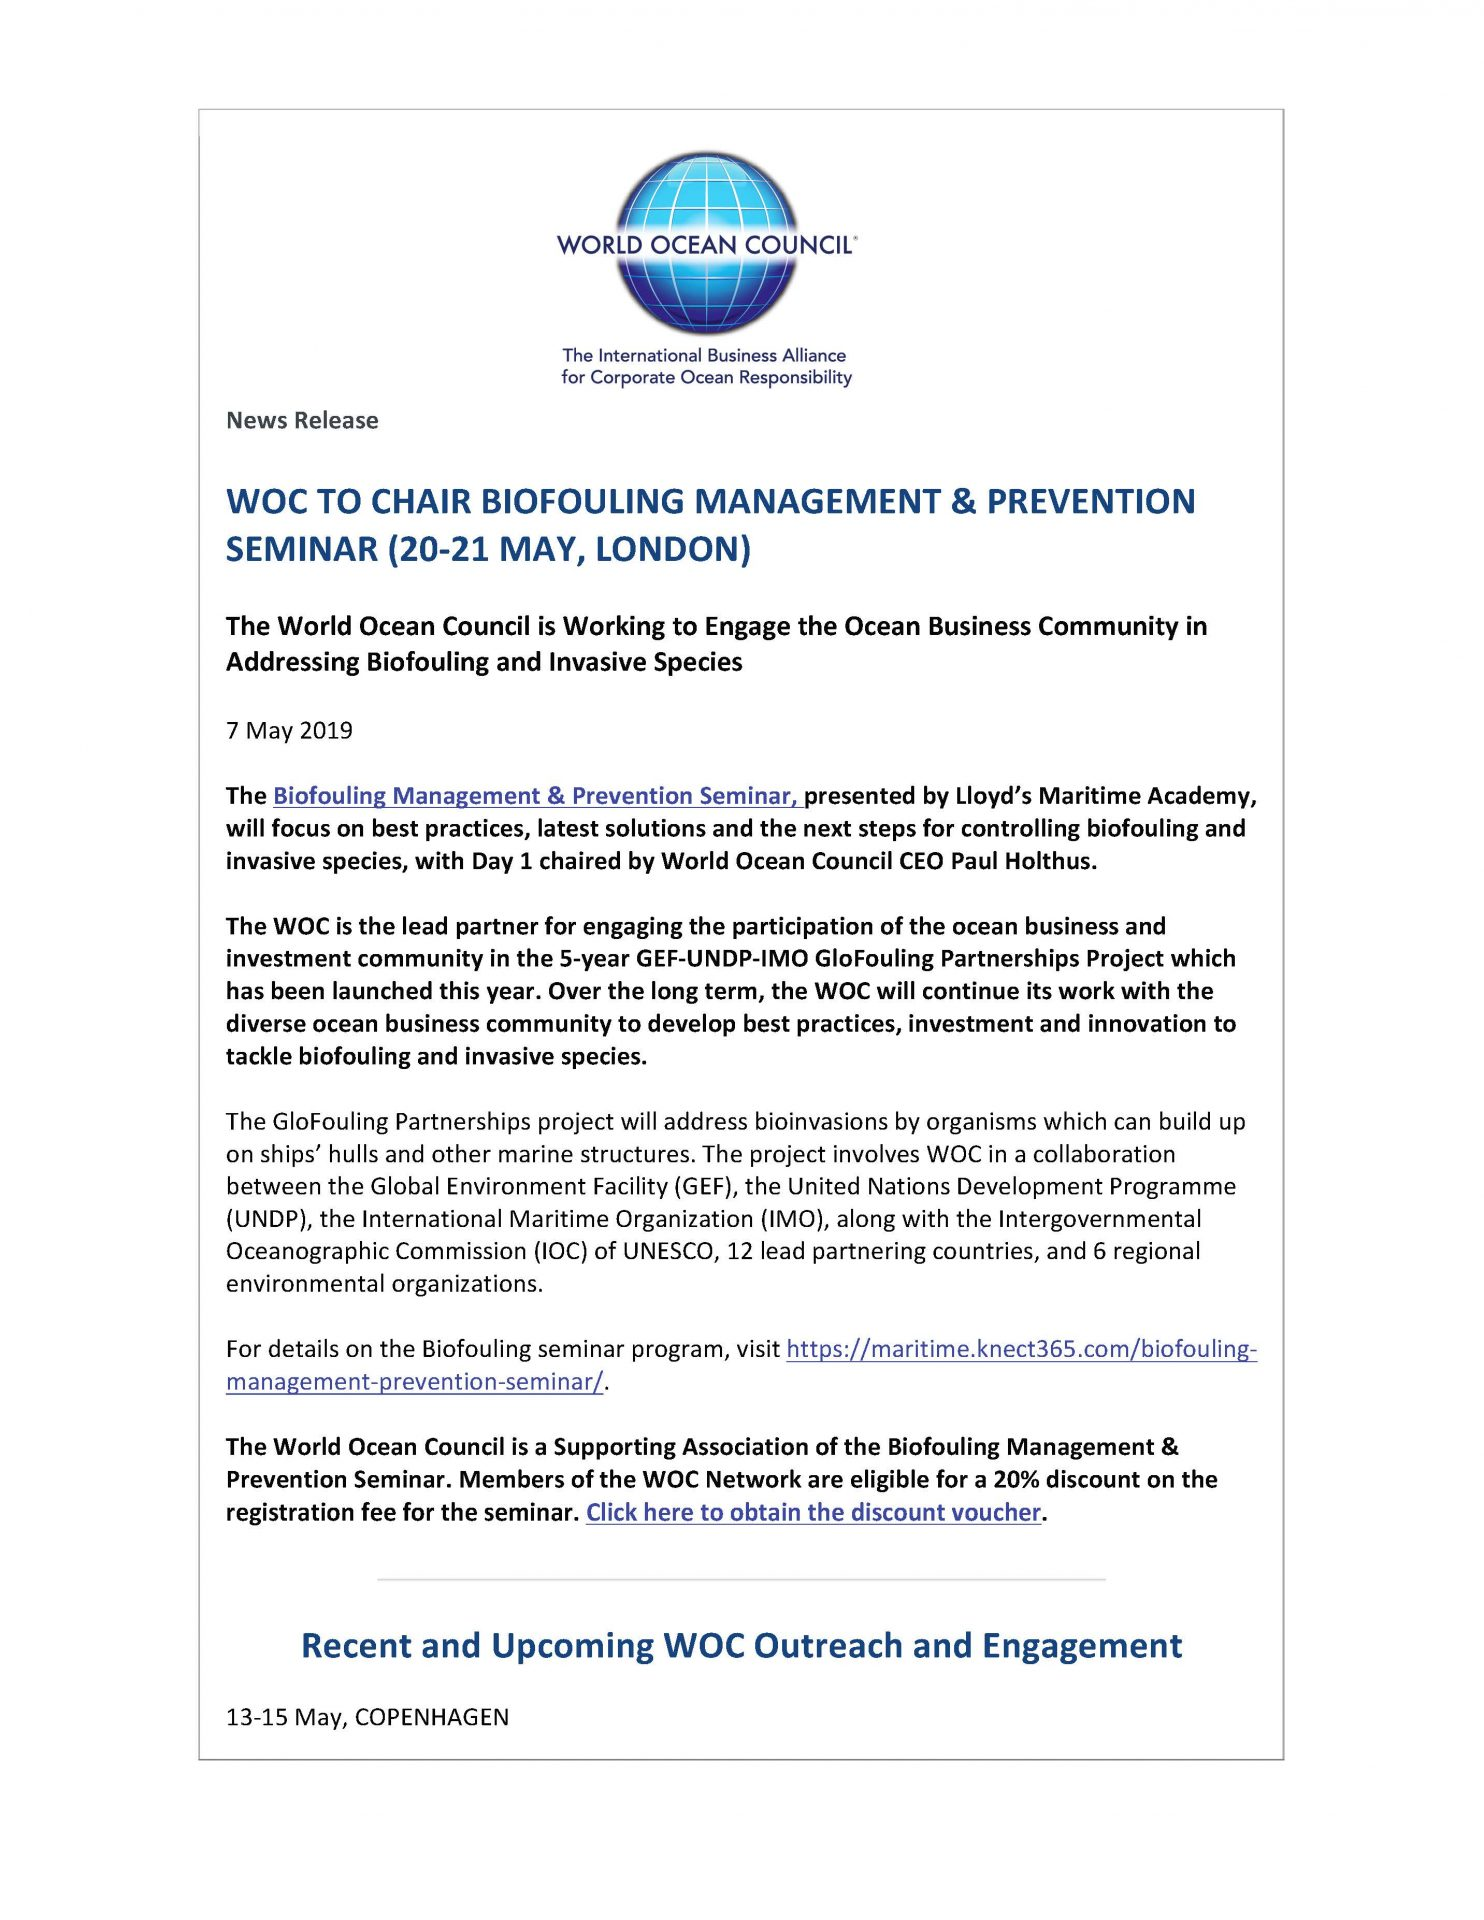 WOC to Chair Biofouling Management & Prevention Seminar (20-21 May, London) - 7 May 2019